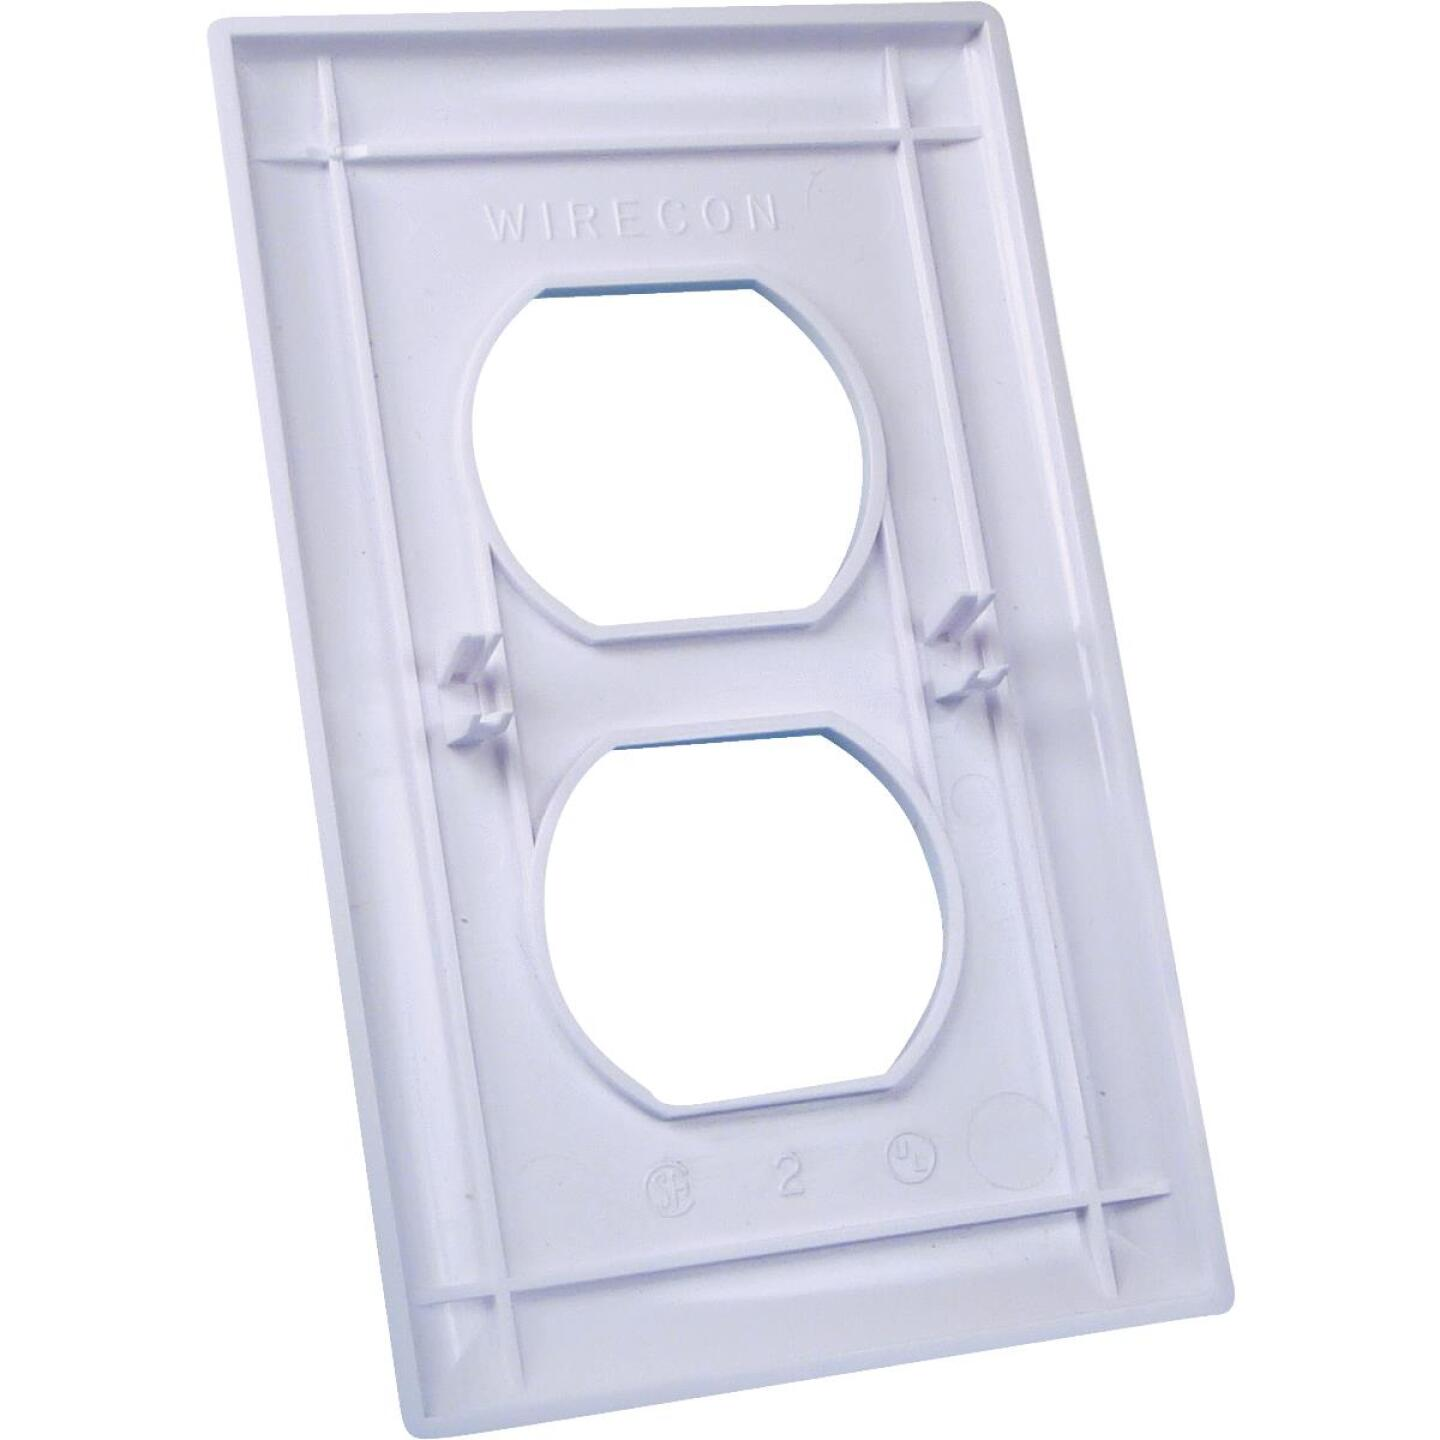 United States Hardware 1-Gang Duplex Outlet Wall Plate, White Image 1